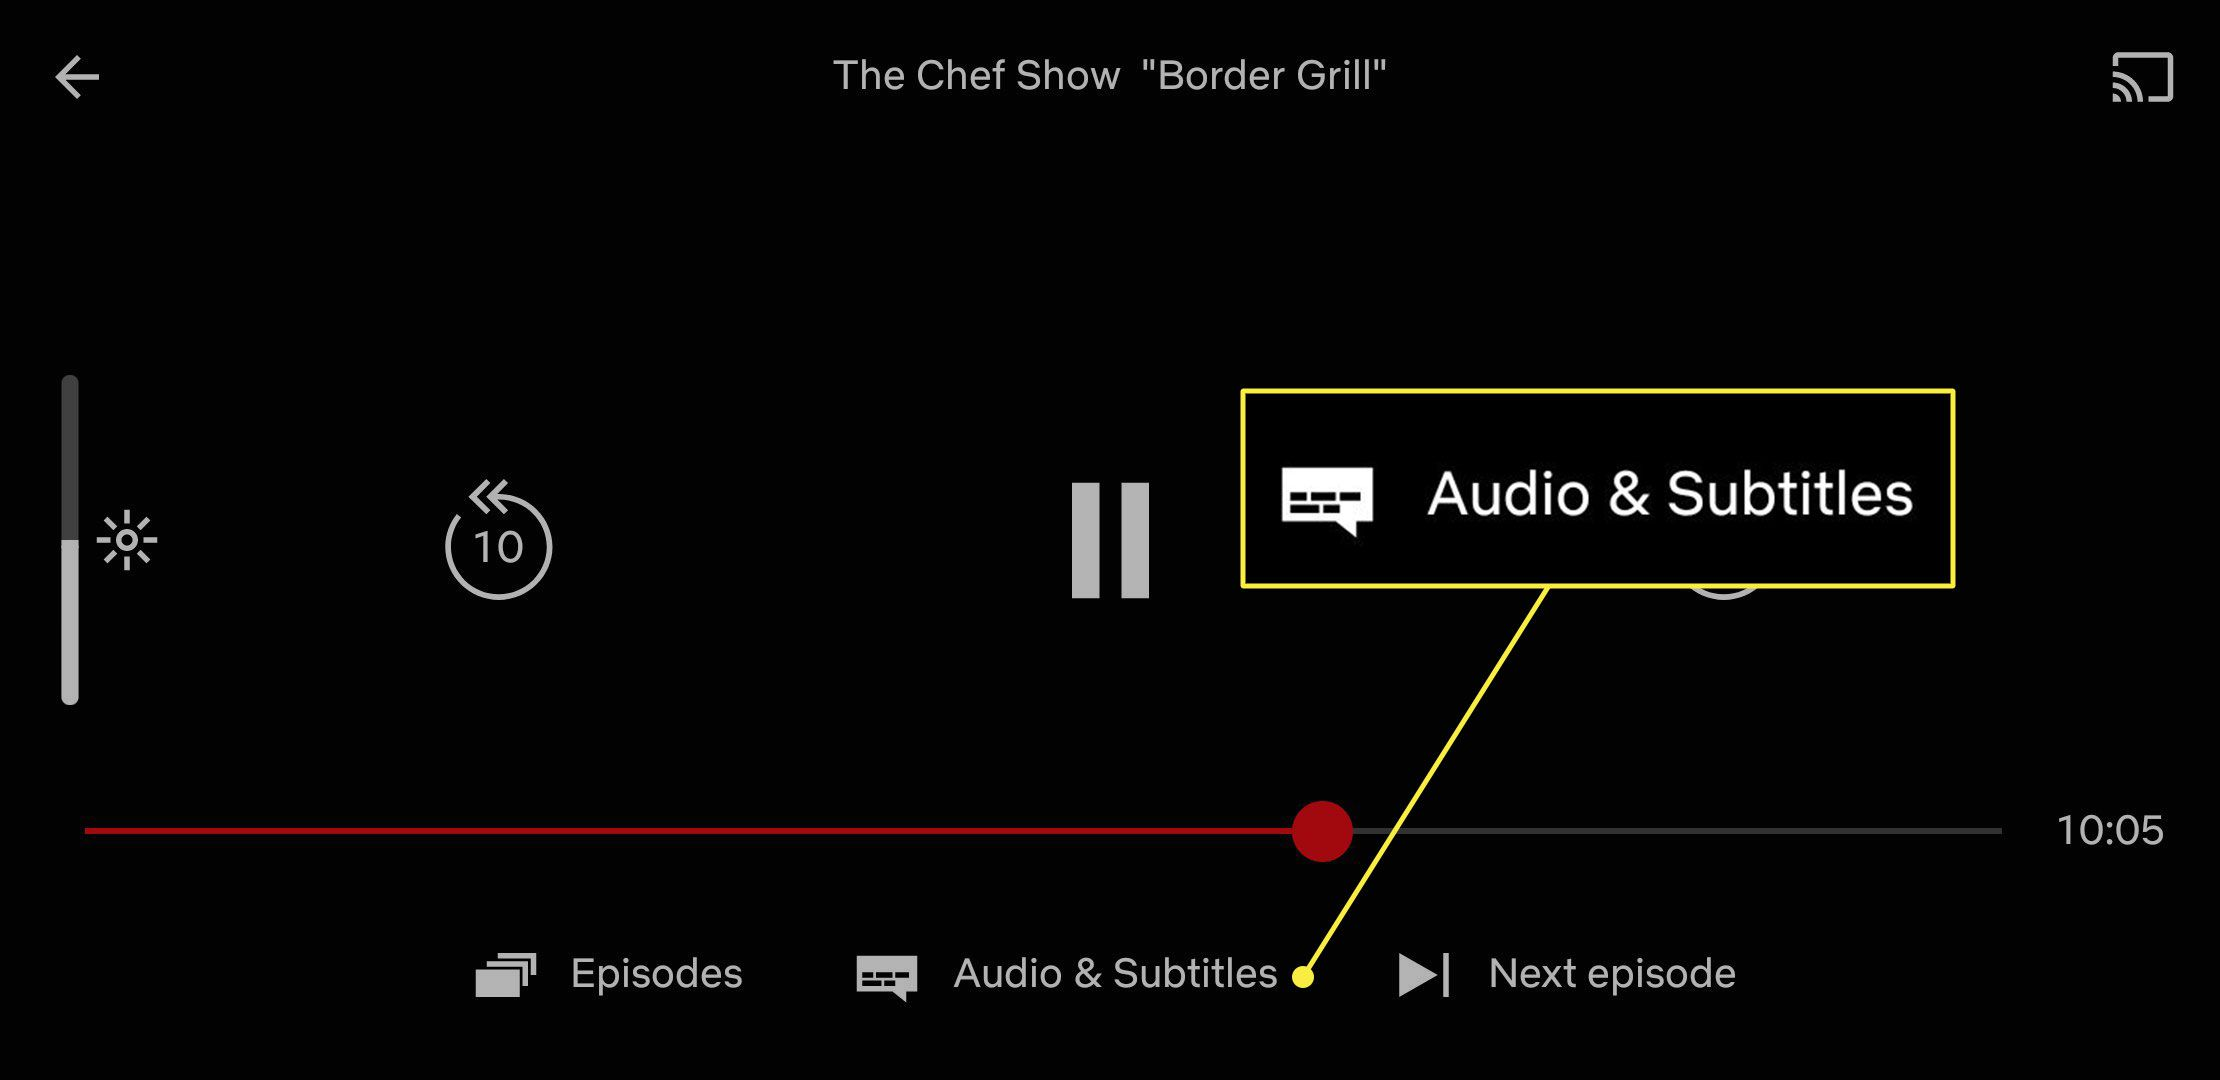 A screenshot of Netflix running on a mobile device with the Audio & Subtitles heading highlighted